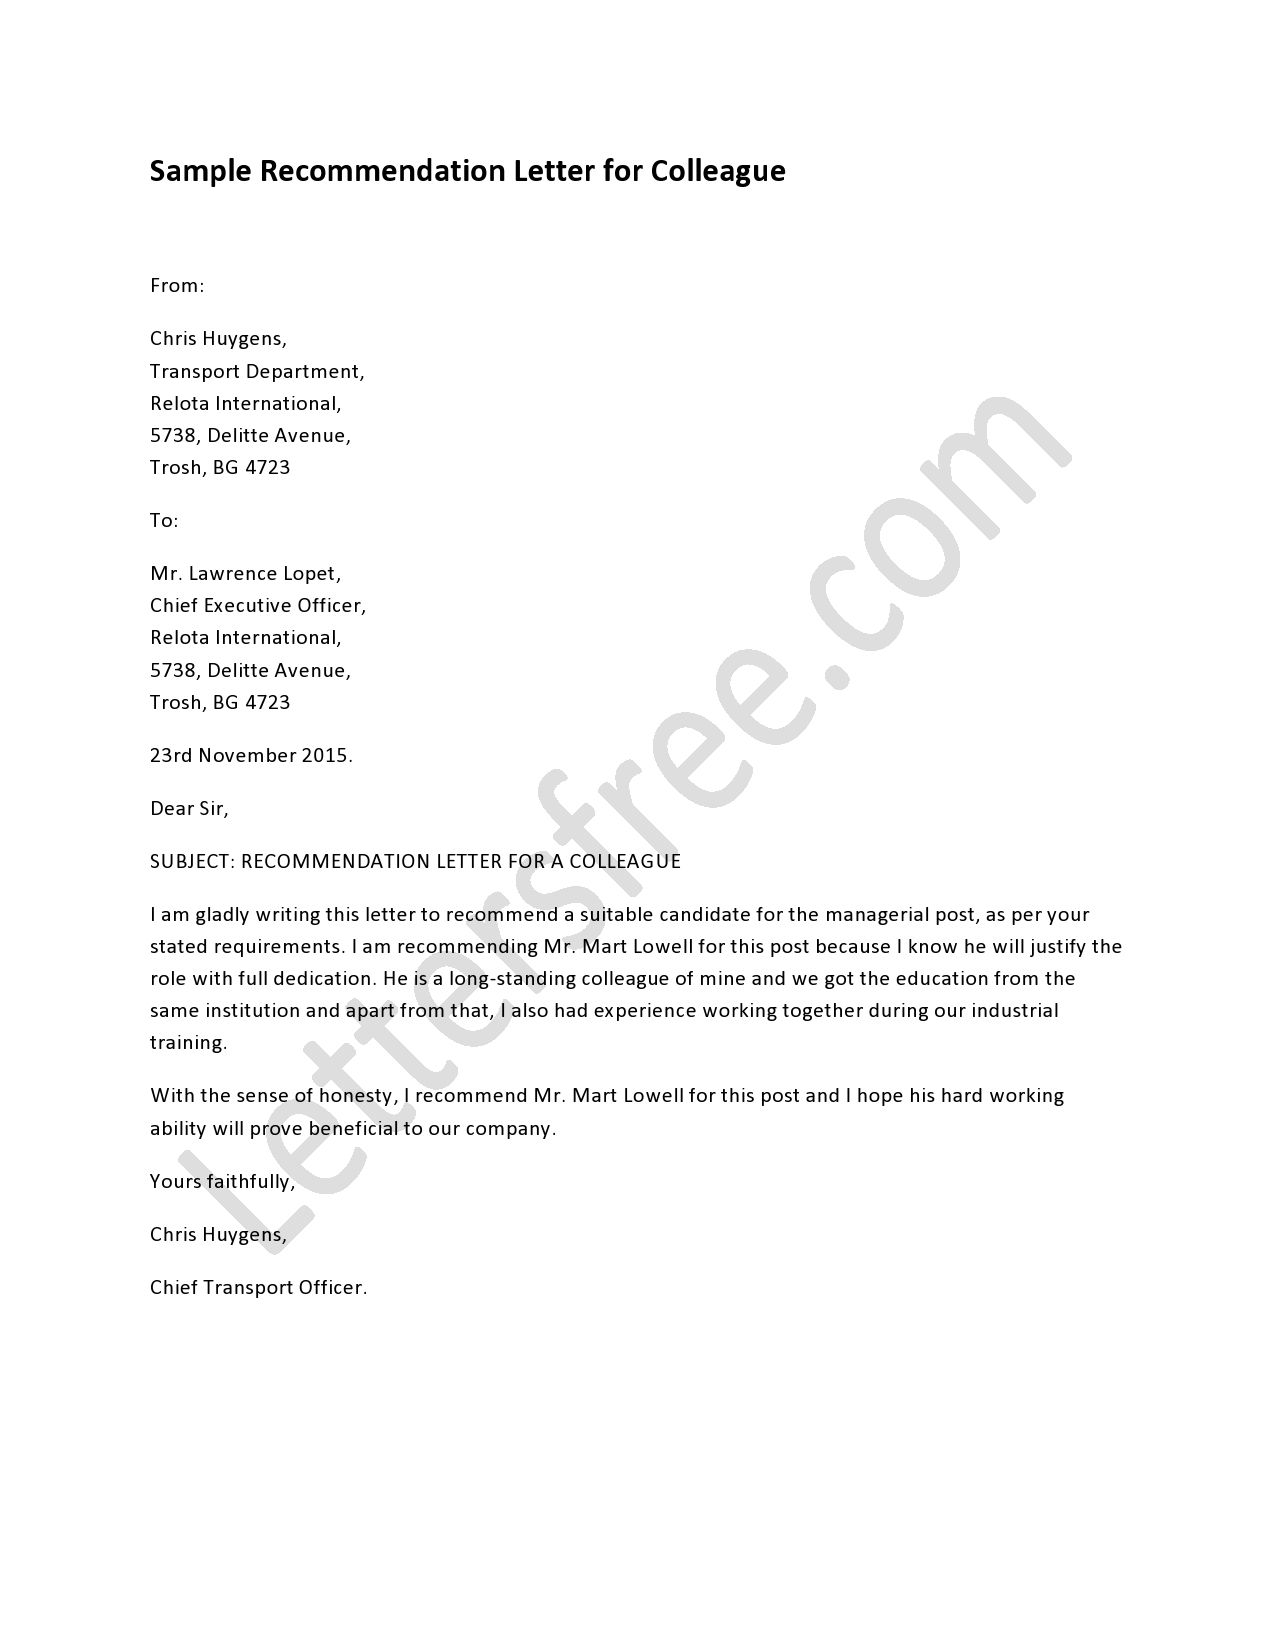 Recommendation Letter for Colleague - Free Letters  Letter of